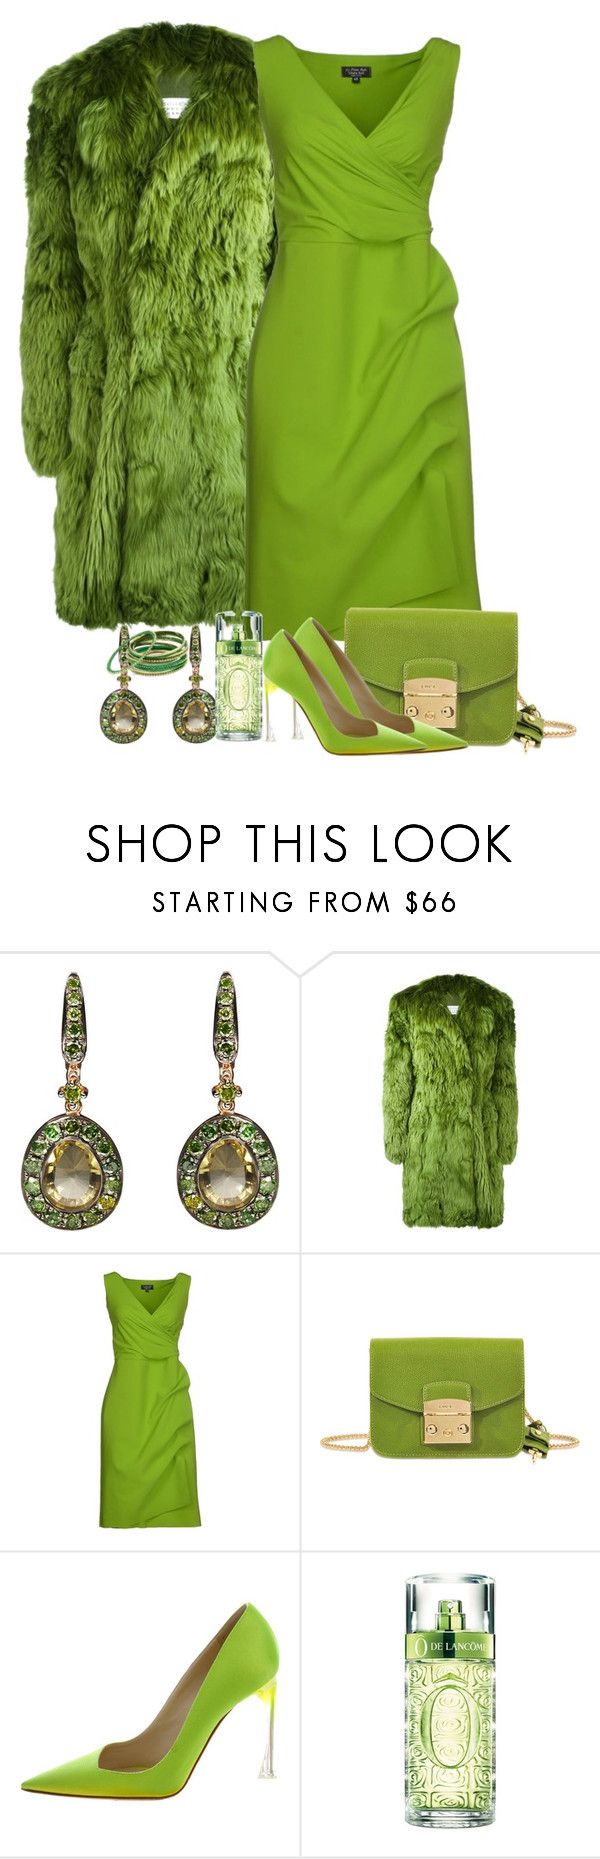 """What a Color"" by ahapplet ❤ liked on Polyvore featuring Annoushka, Maison Margiela, La Petite Robe di Chiara Boni, Furla, Christian Dior, Lancôme, Amrita Singh, GREEN, Monochromatic and apple"